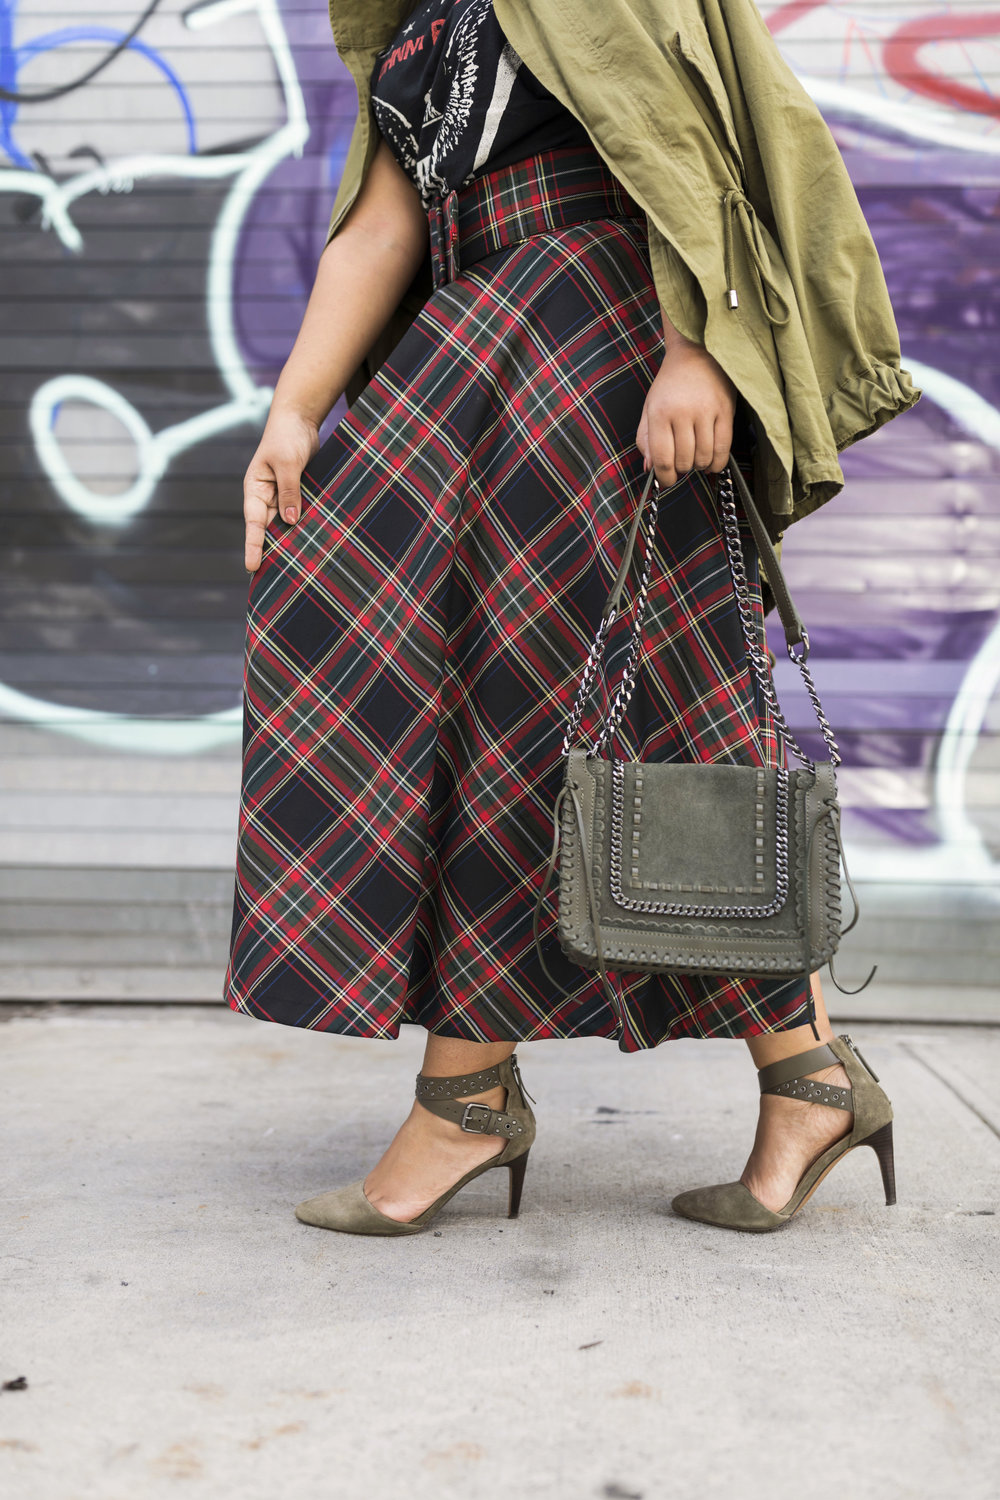 Krity S x Fall Trends x Plaid with a Punk Twist14.jpg